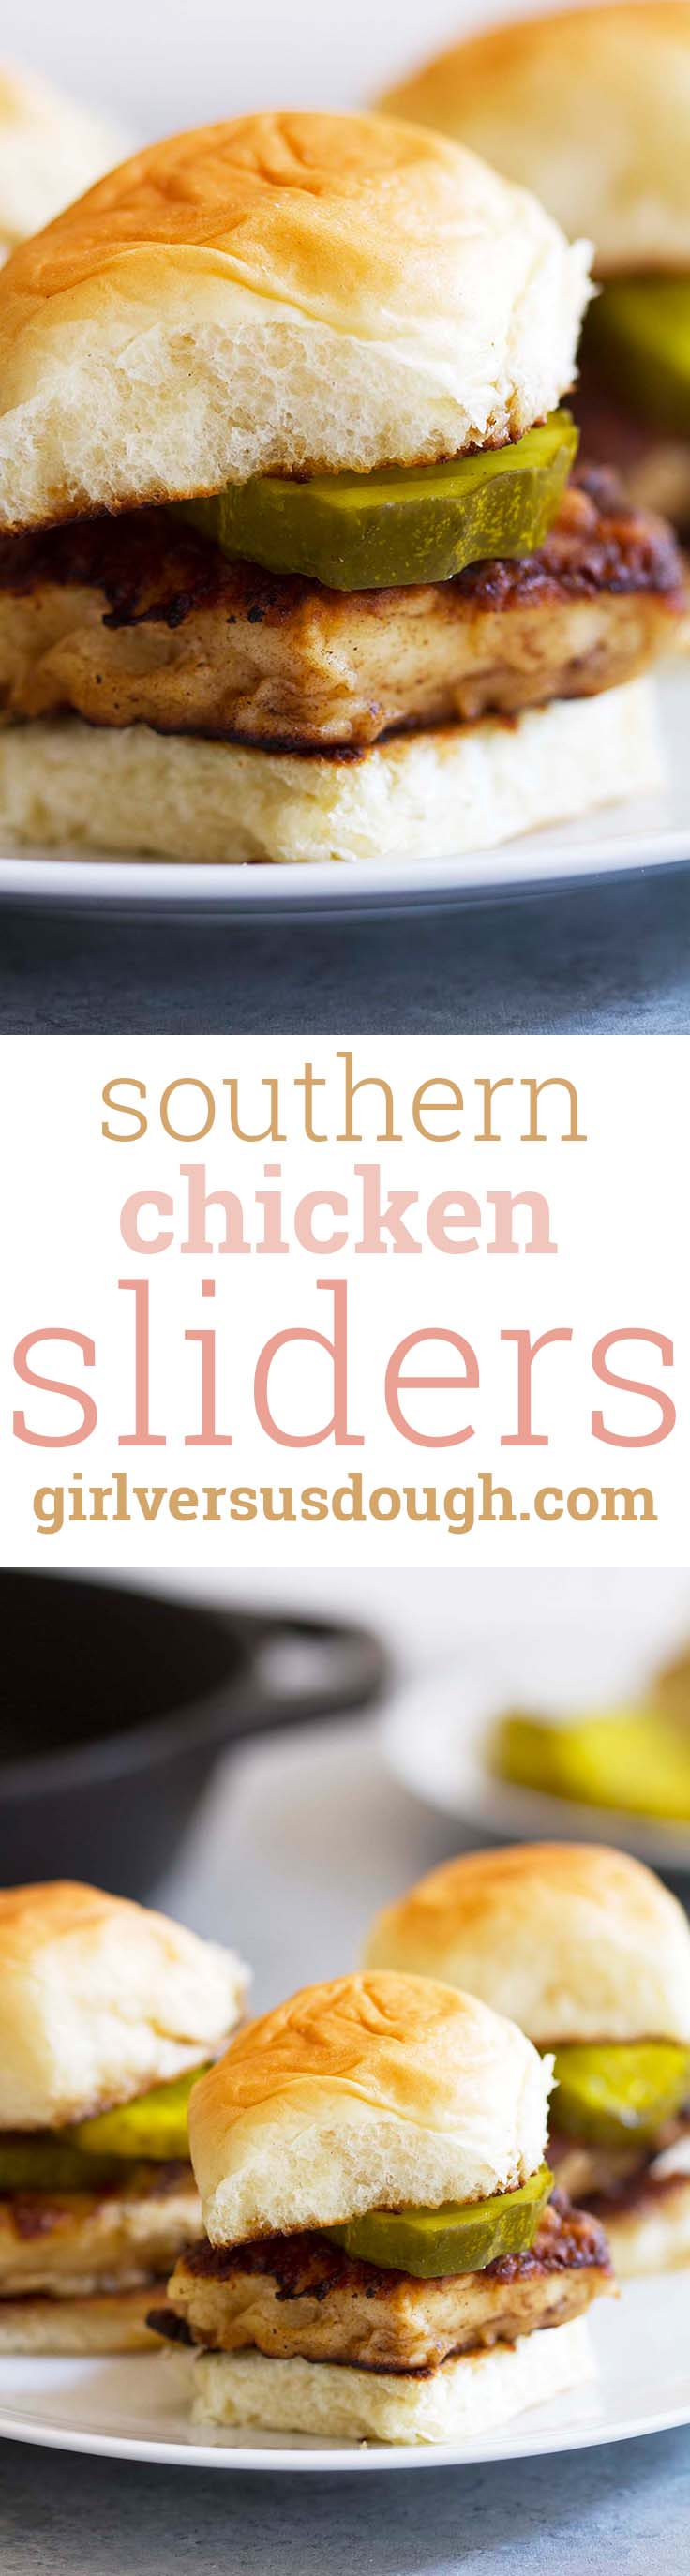 Five Ingredient Southern Style Chicken Sliders -- crispy fried chicken with bread and butter pickles on sweet slider rolls. An easy, quick and delicious dinner or game day food! girlversusdough.com @girlversusdough